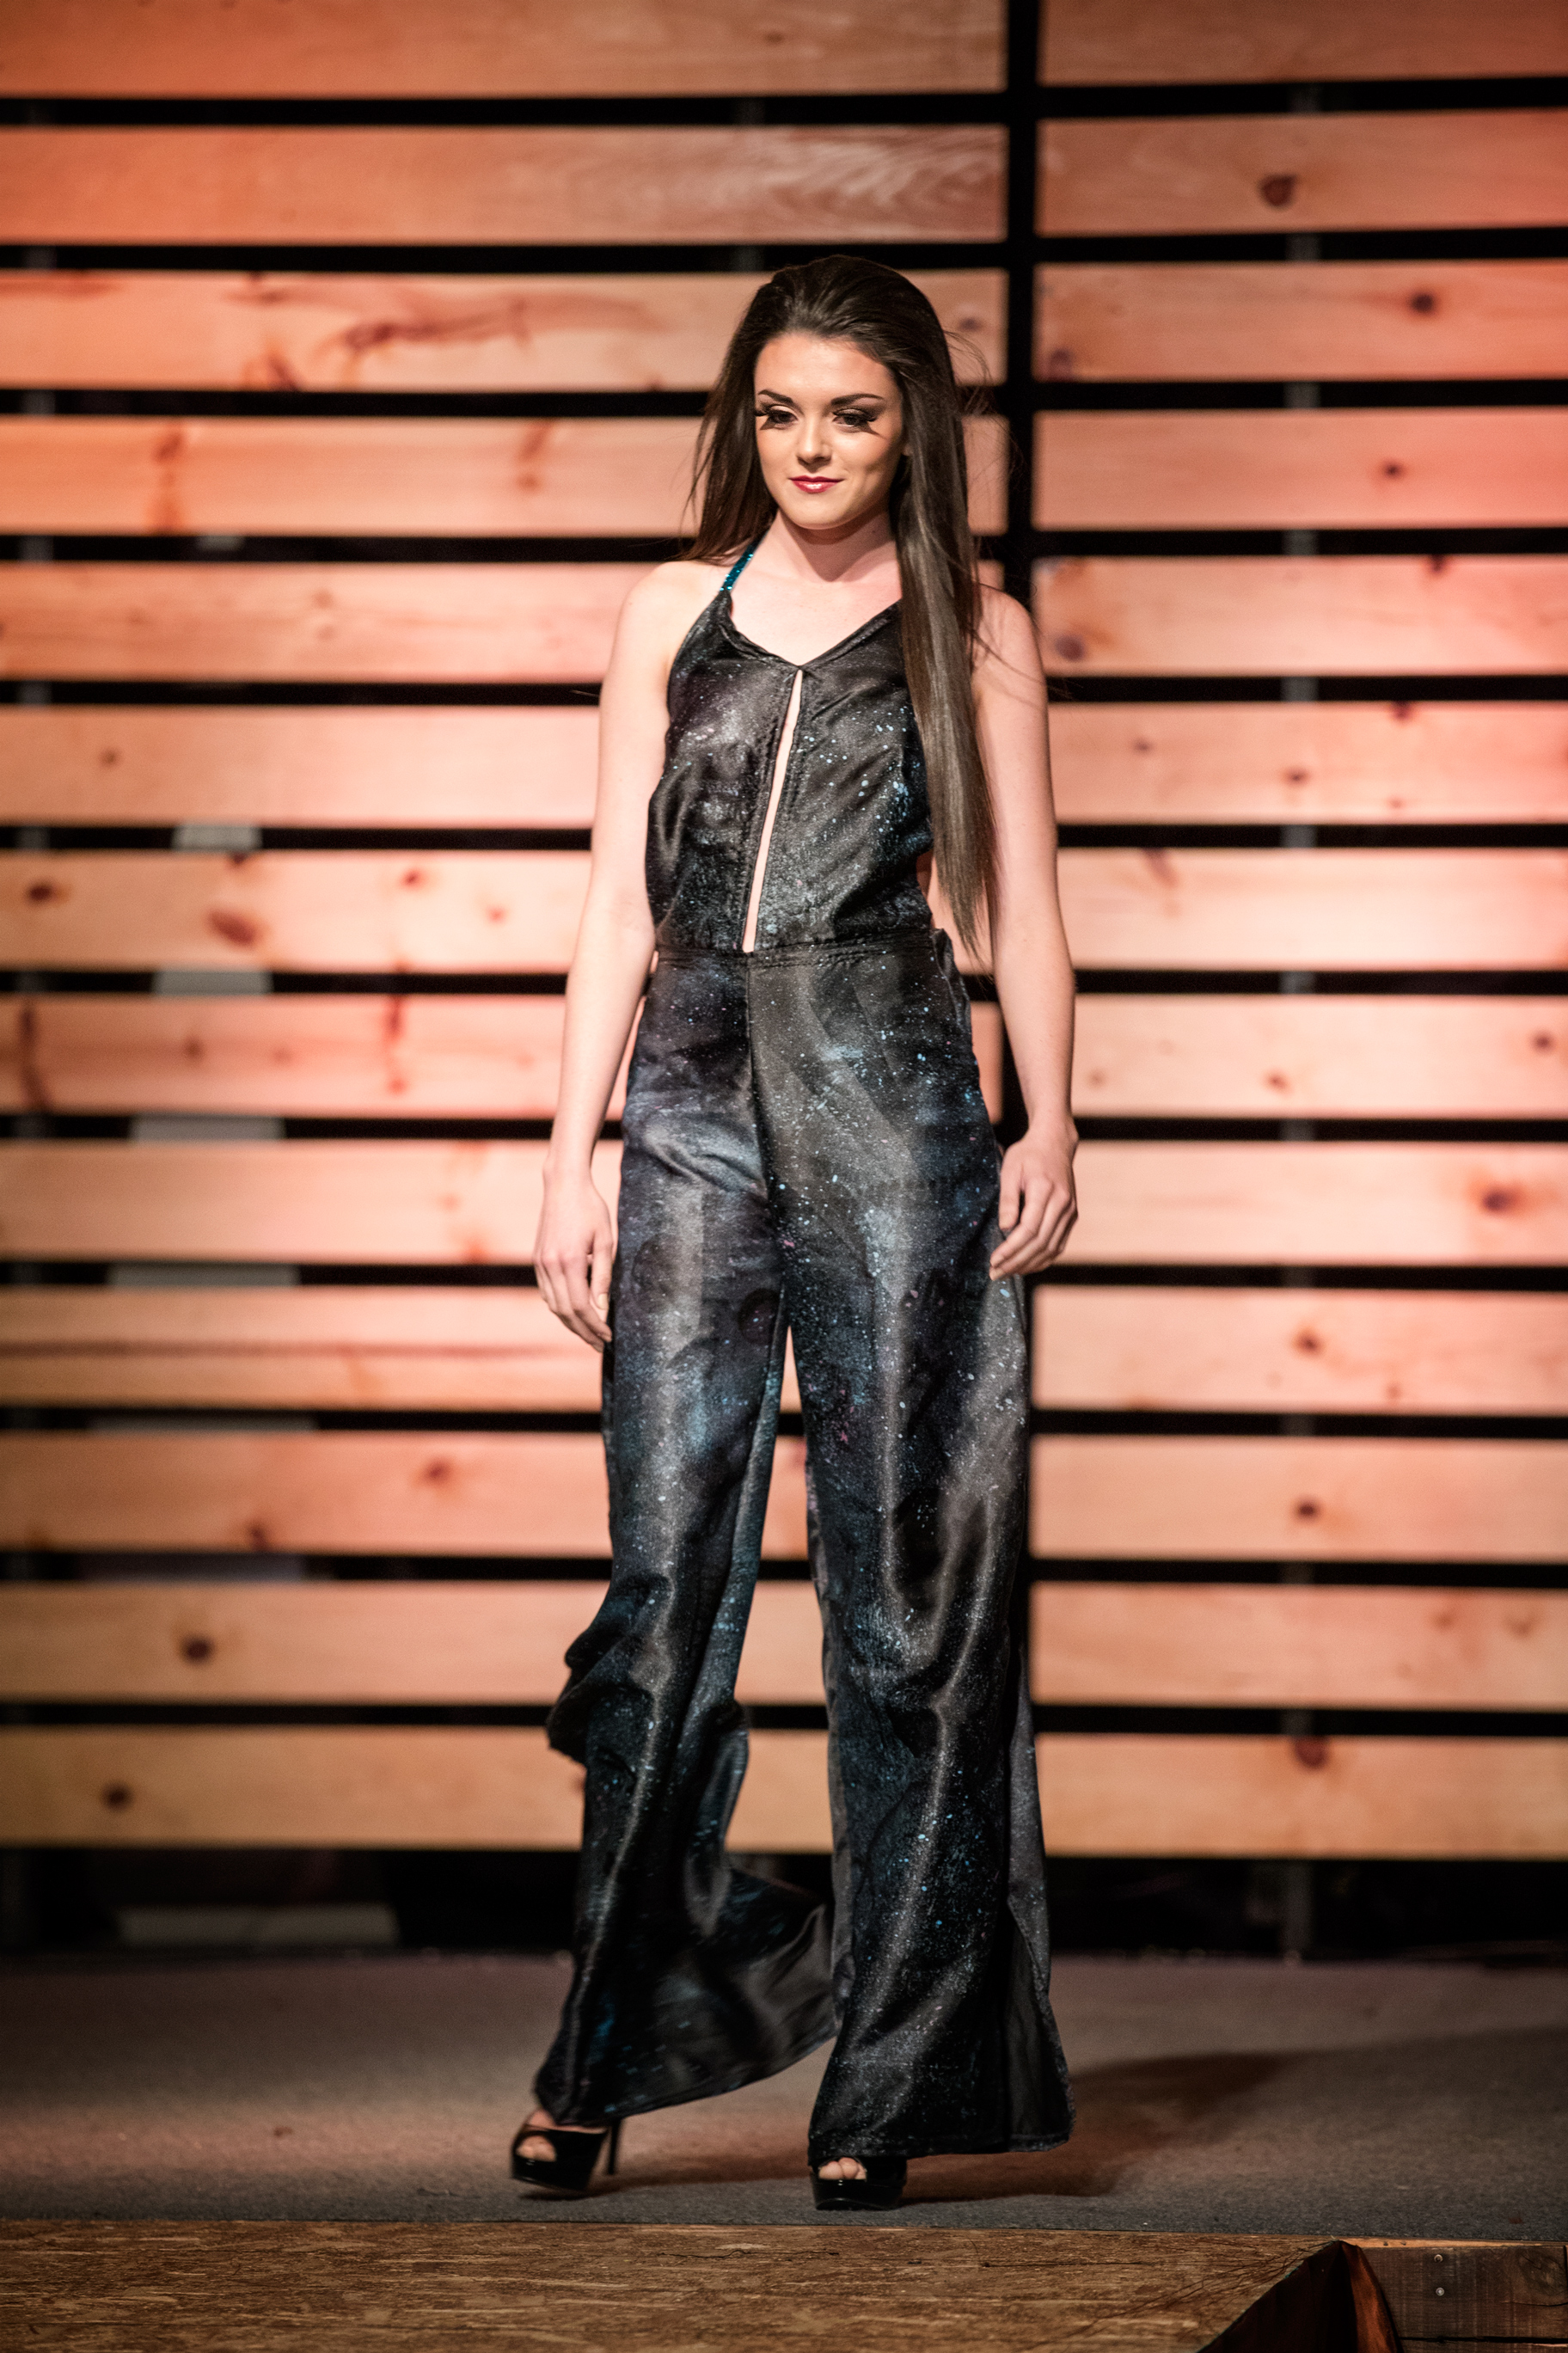 Mission Wear Upcycled Patchwork Fashion Show - 037.jpg